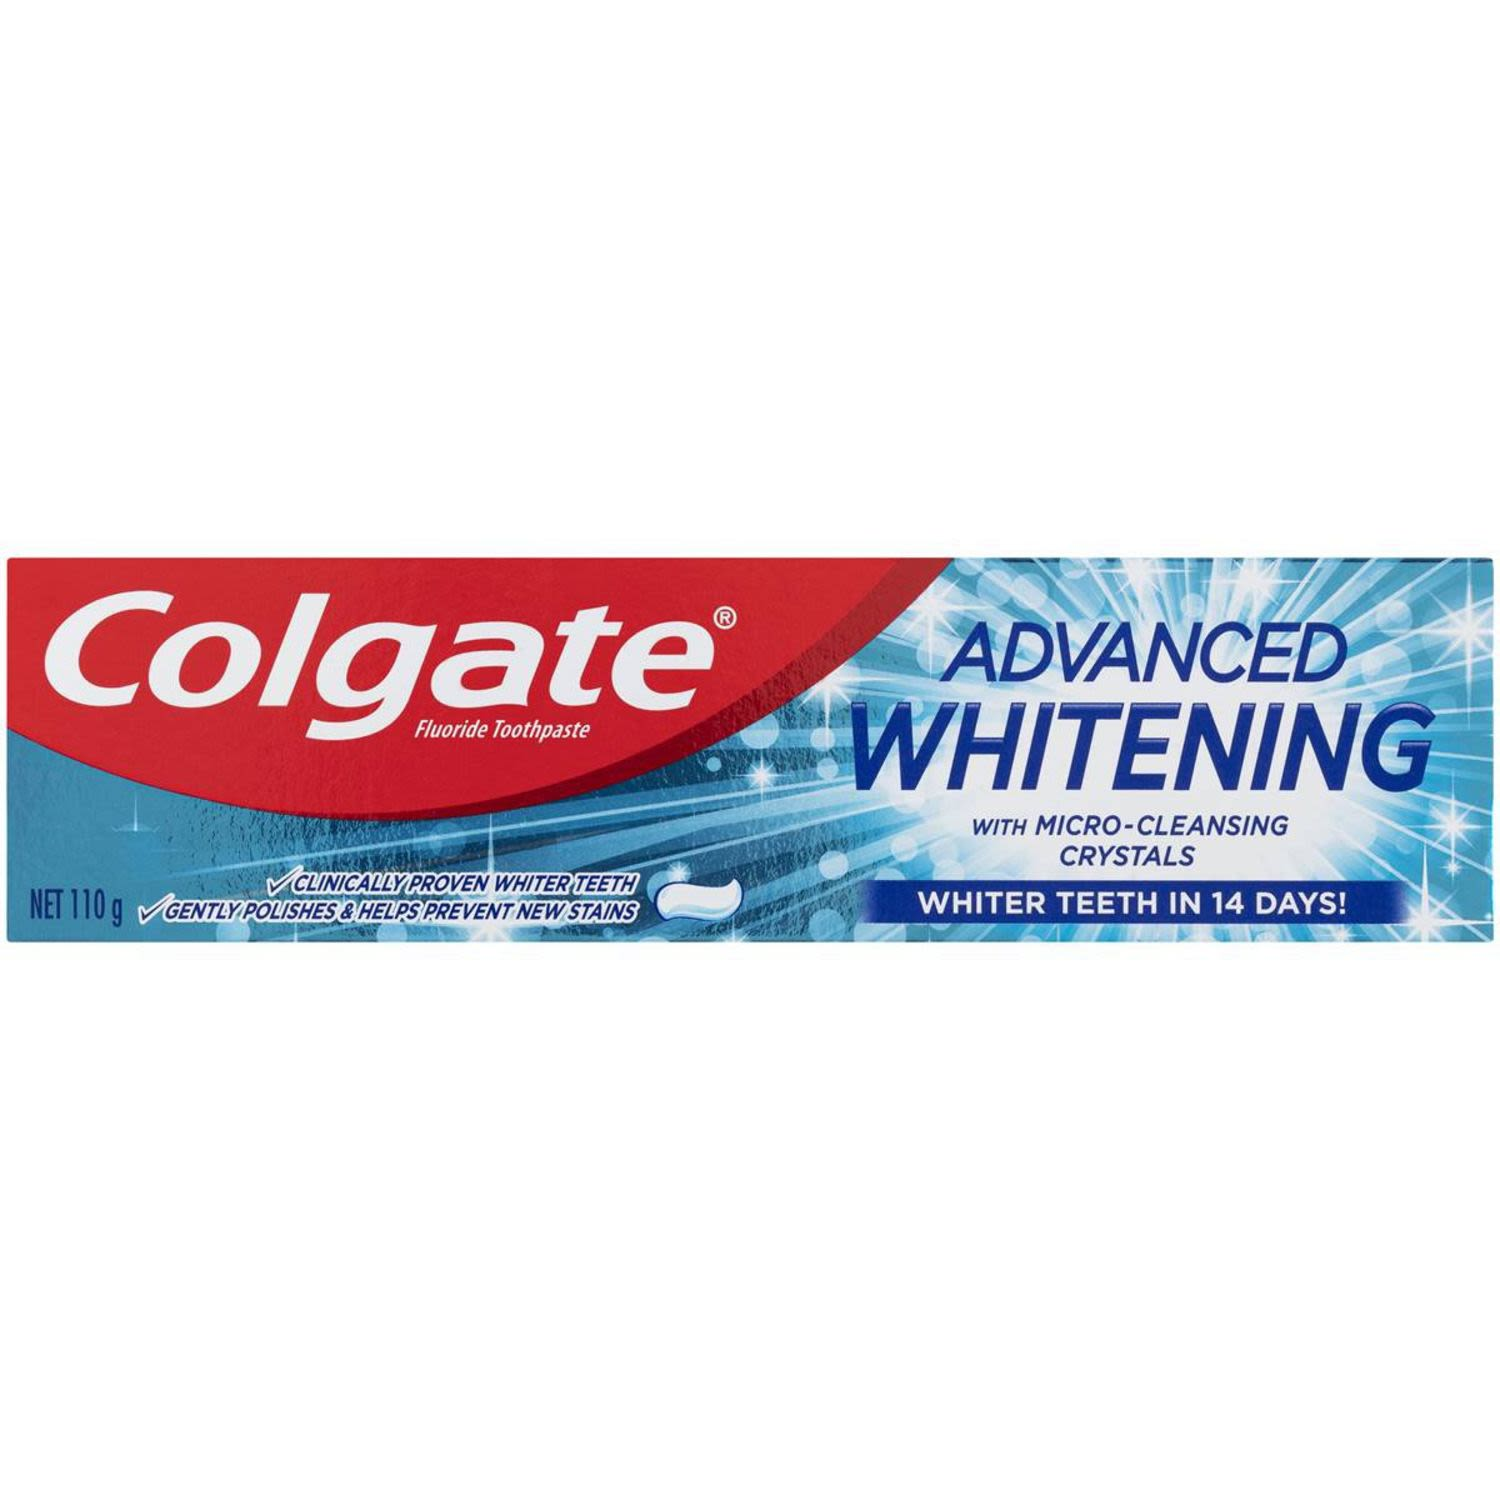 Colgate Advanced Whitening Tartar Control Whitening Toothpaste with Microcleansing Crystals, 120 Gram